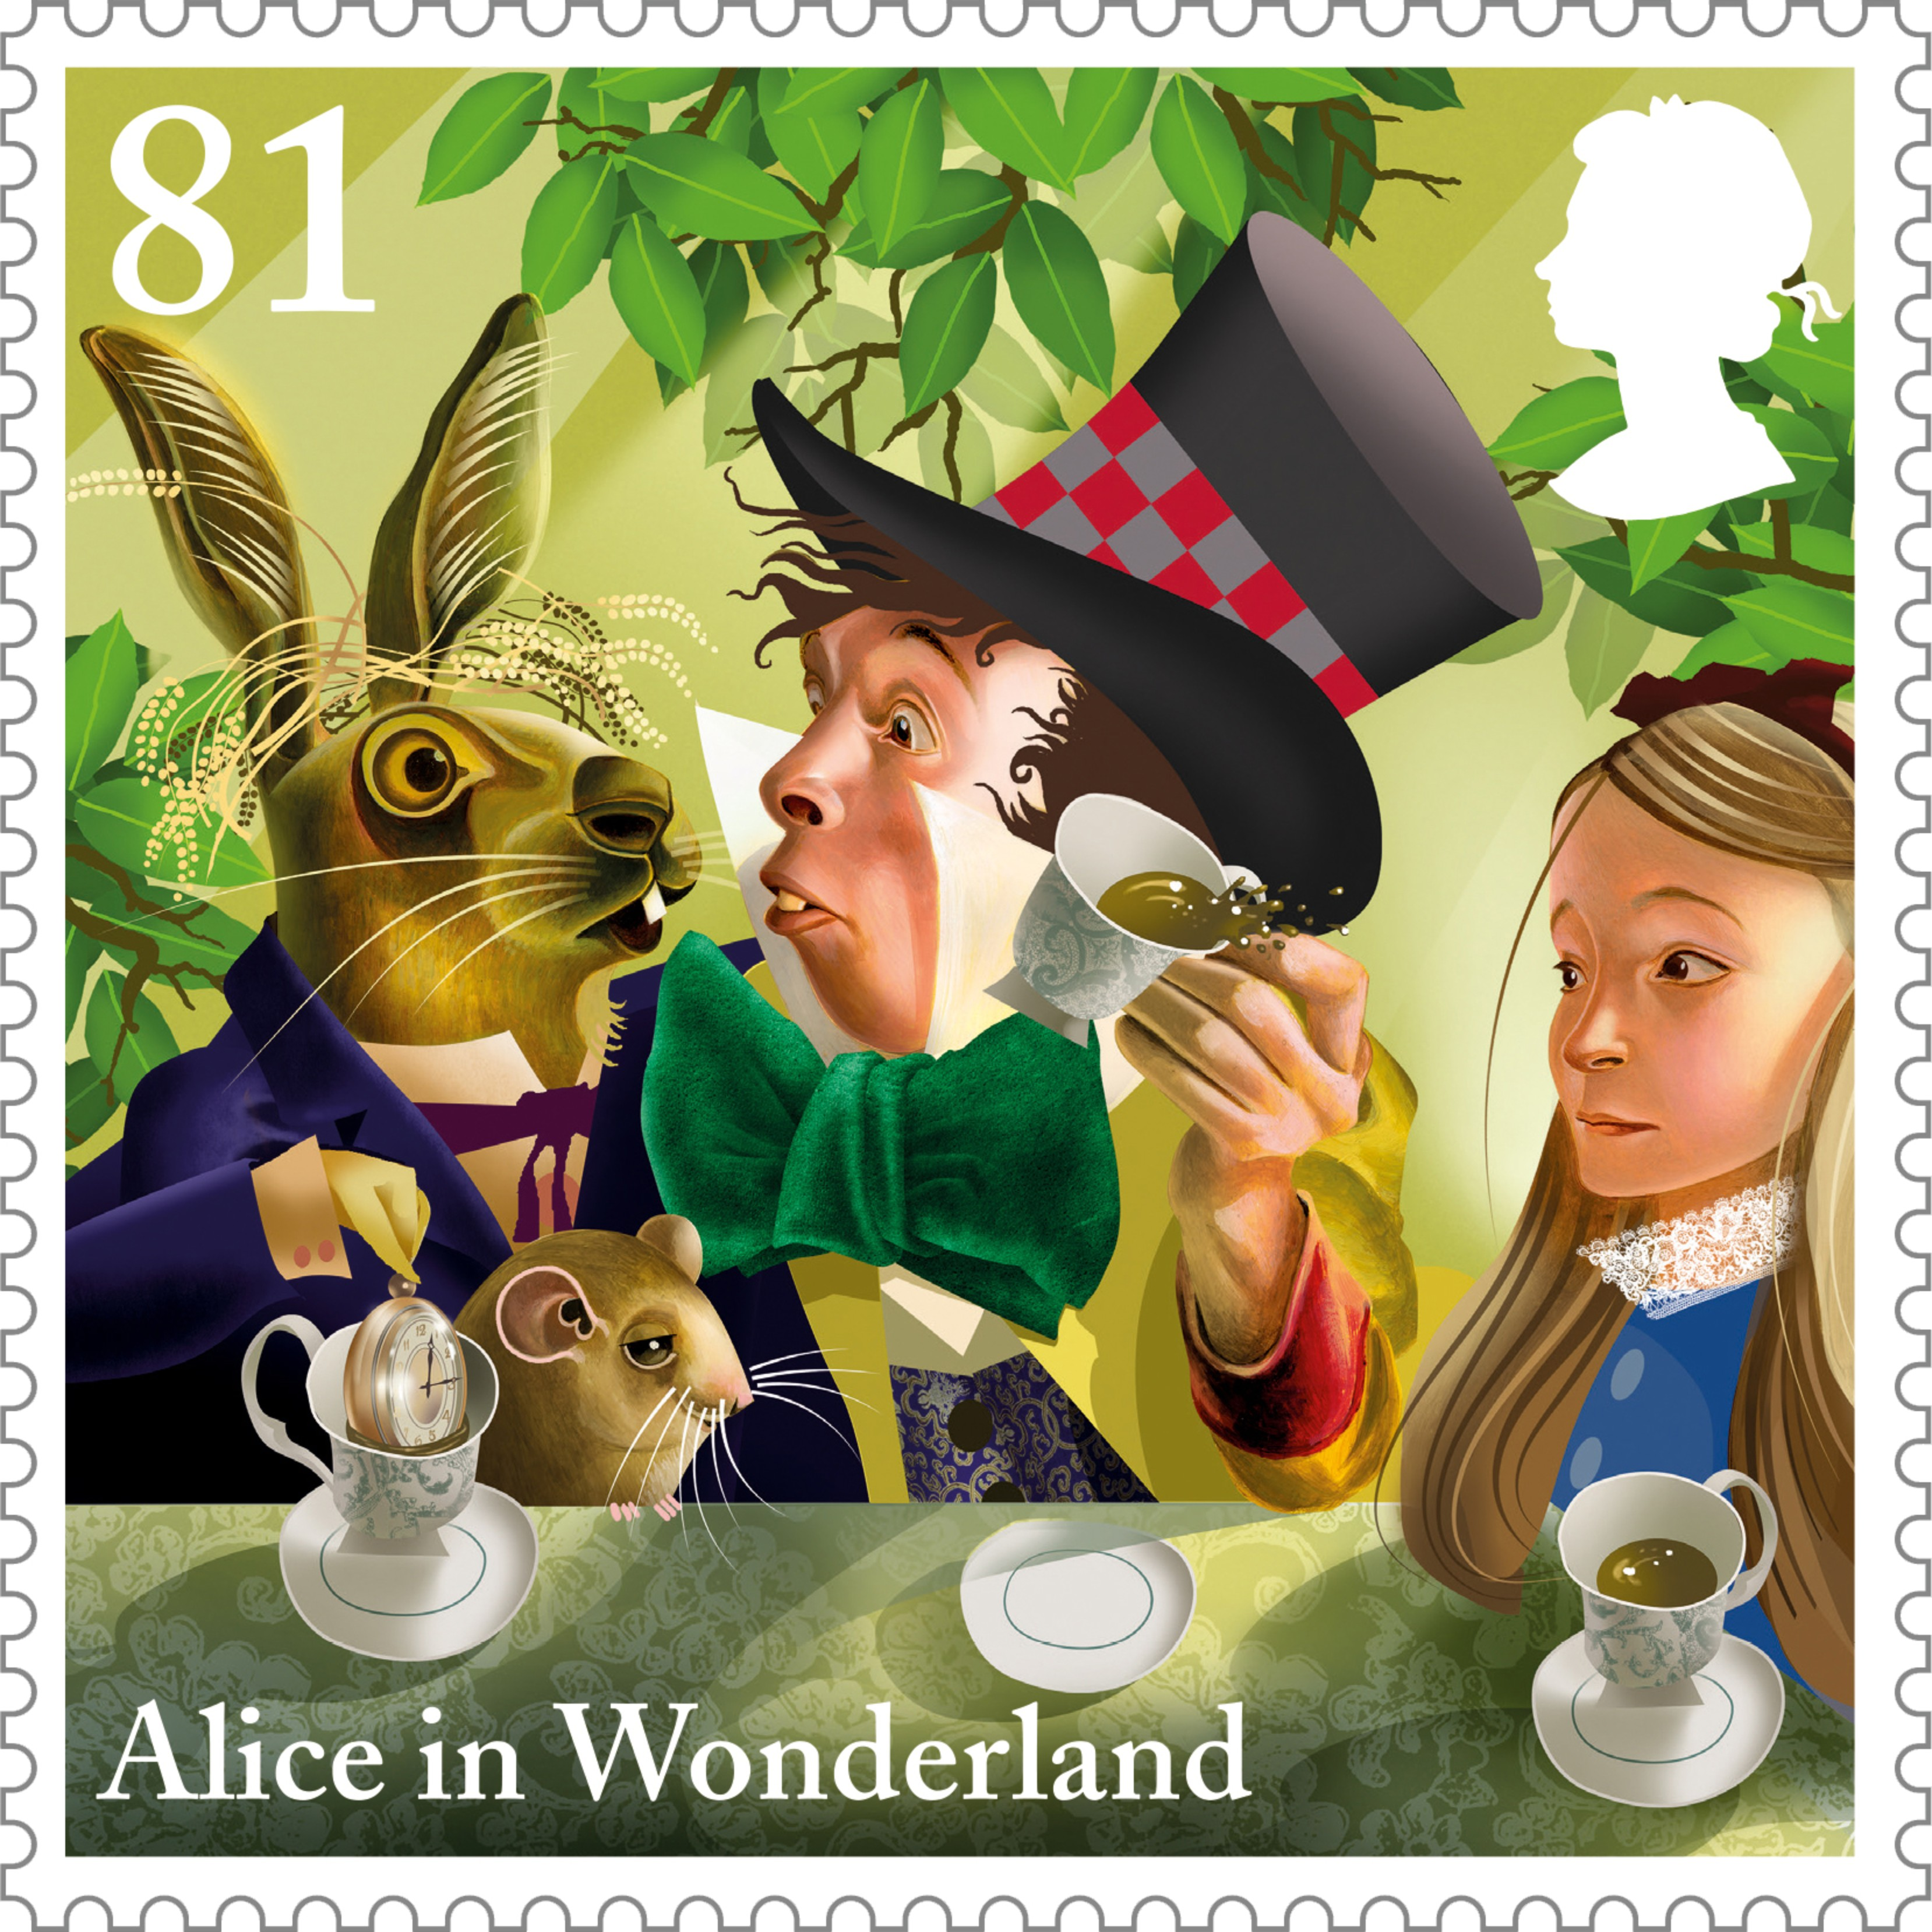 New Stamps Alice In Wonderland The British Postal